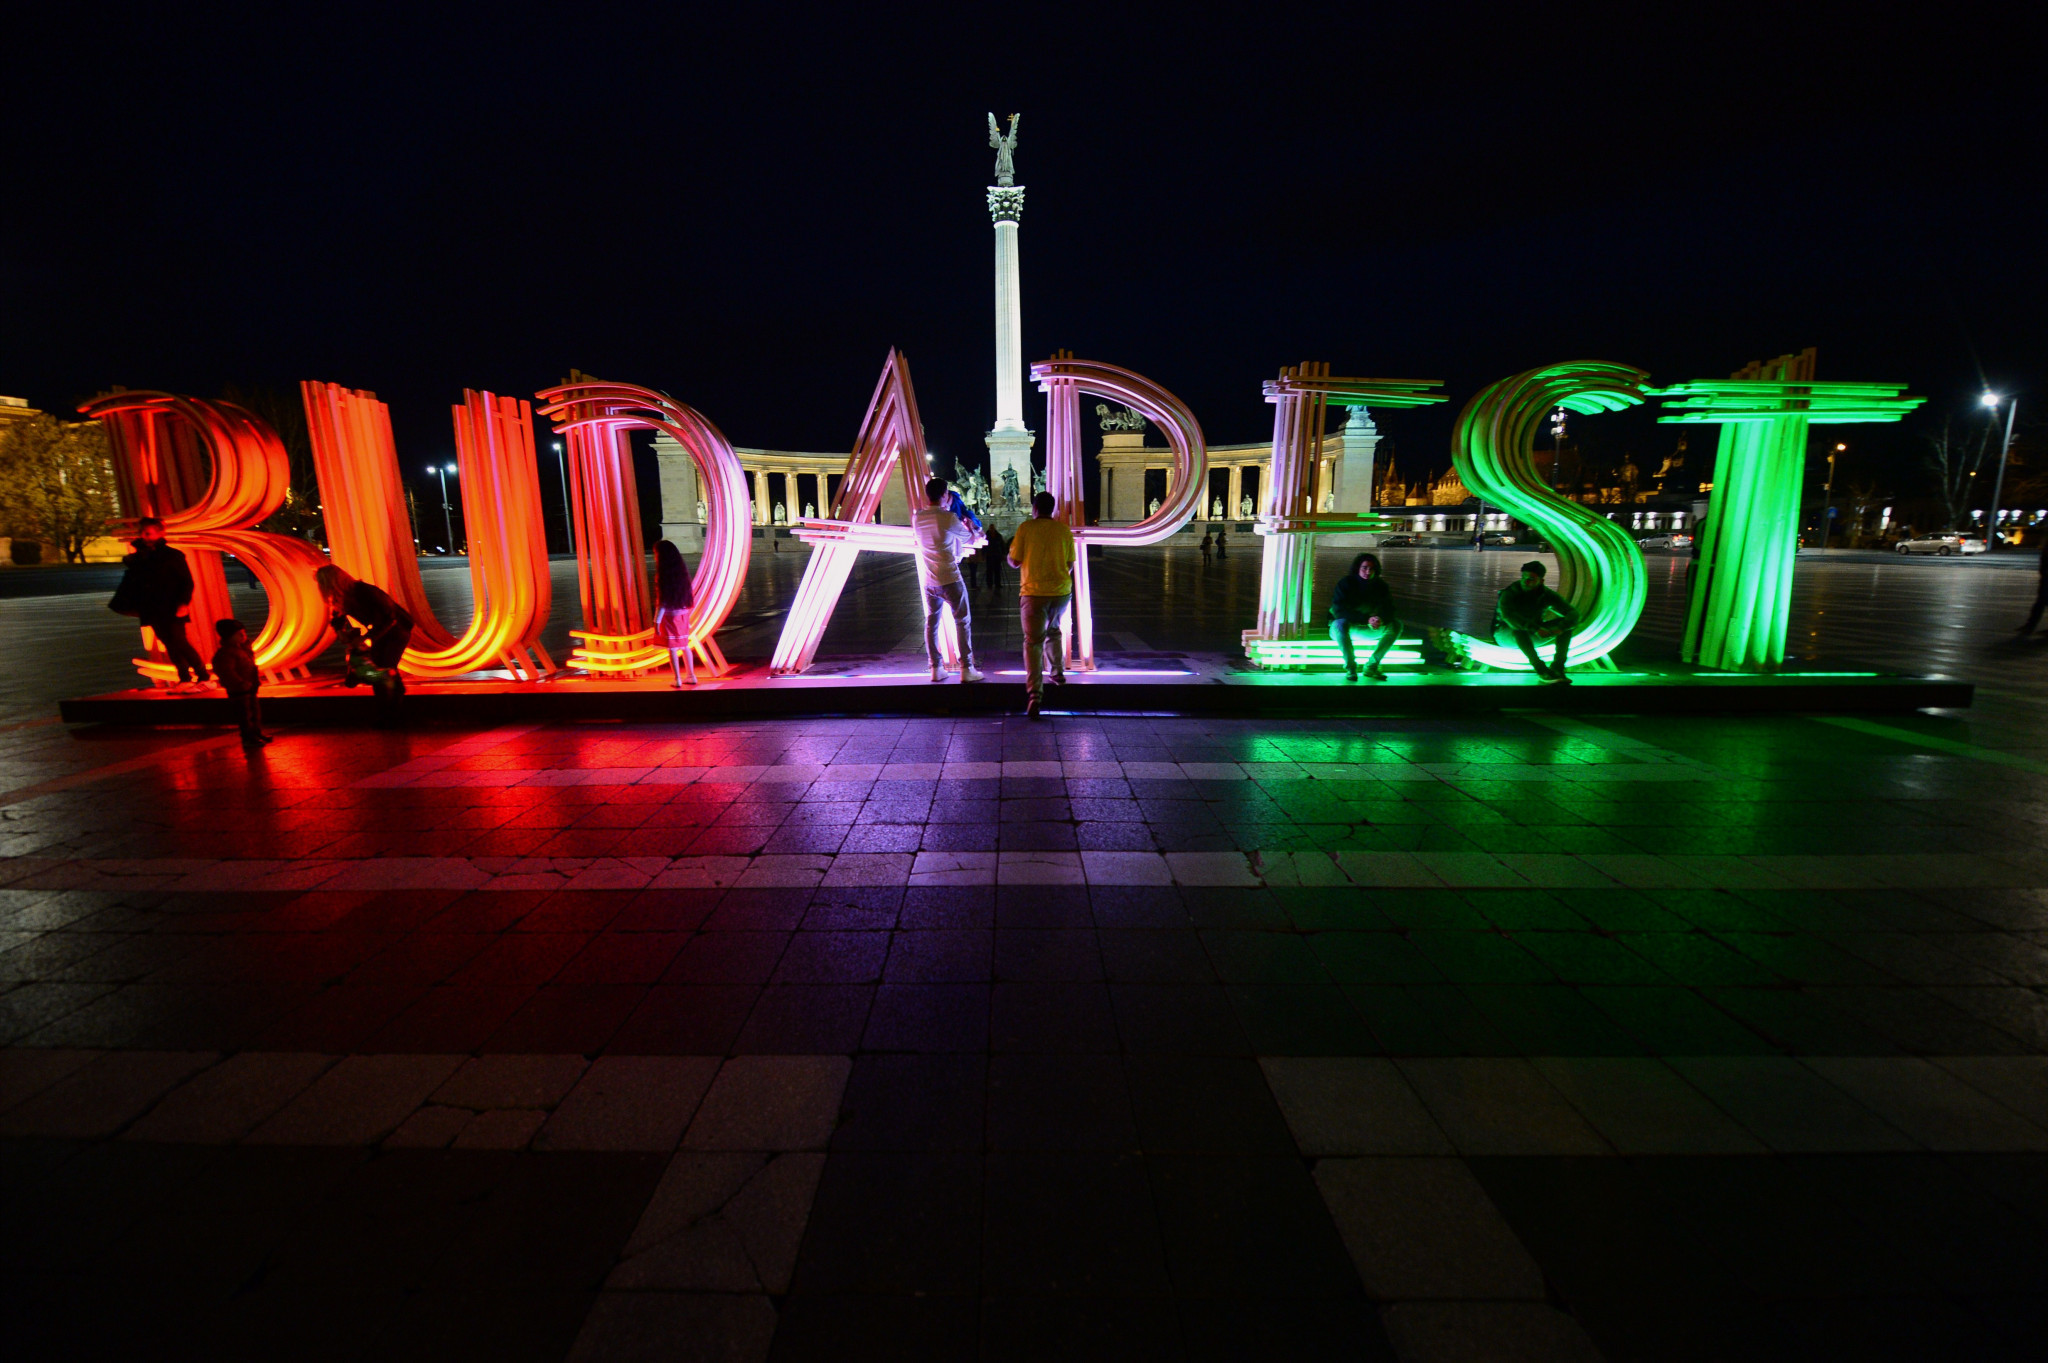 Committee established to study feasibility of Budapest bid for 2032 Olympics